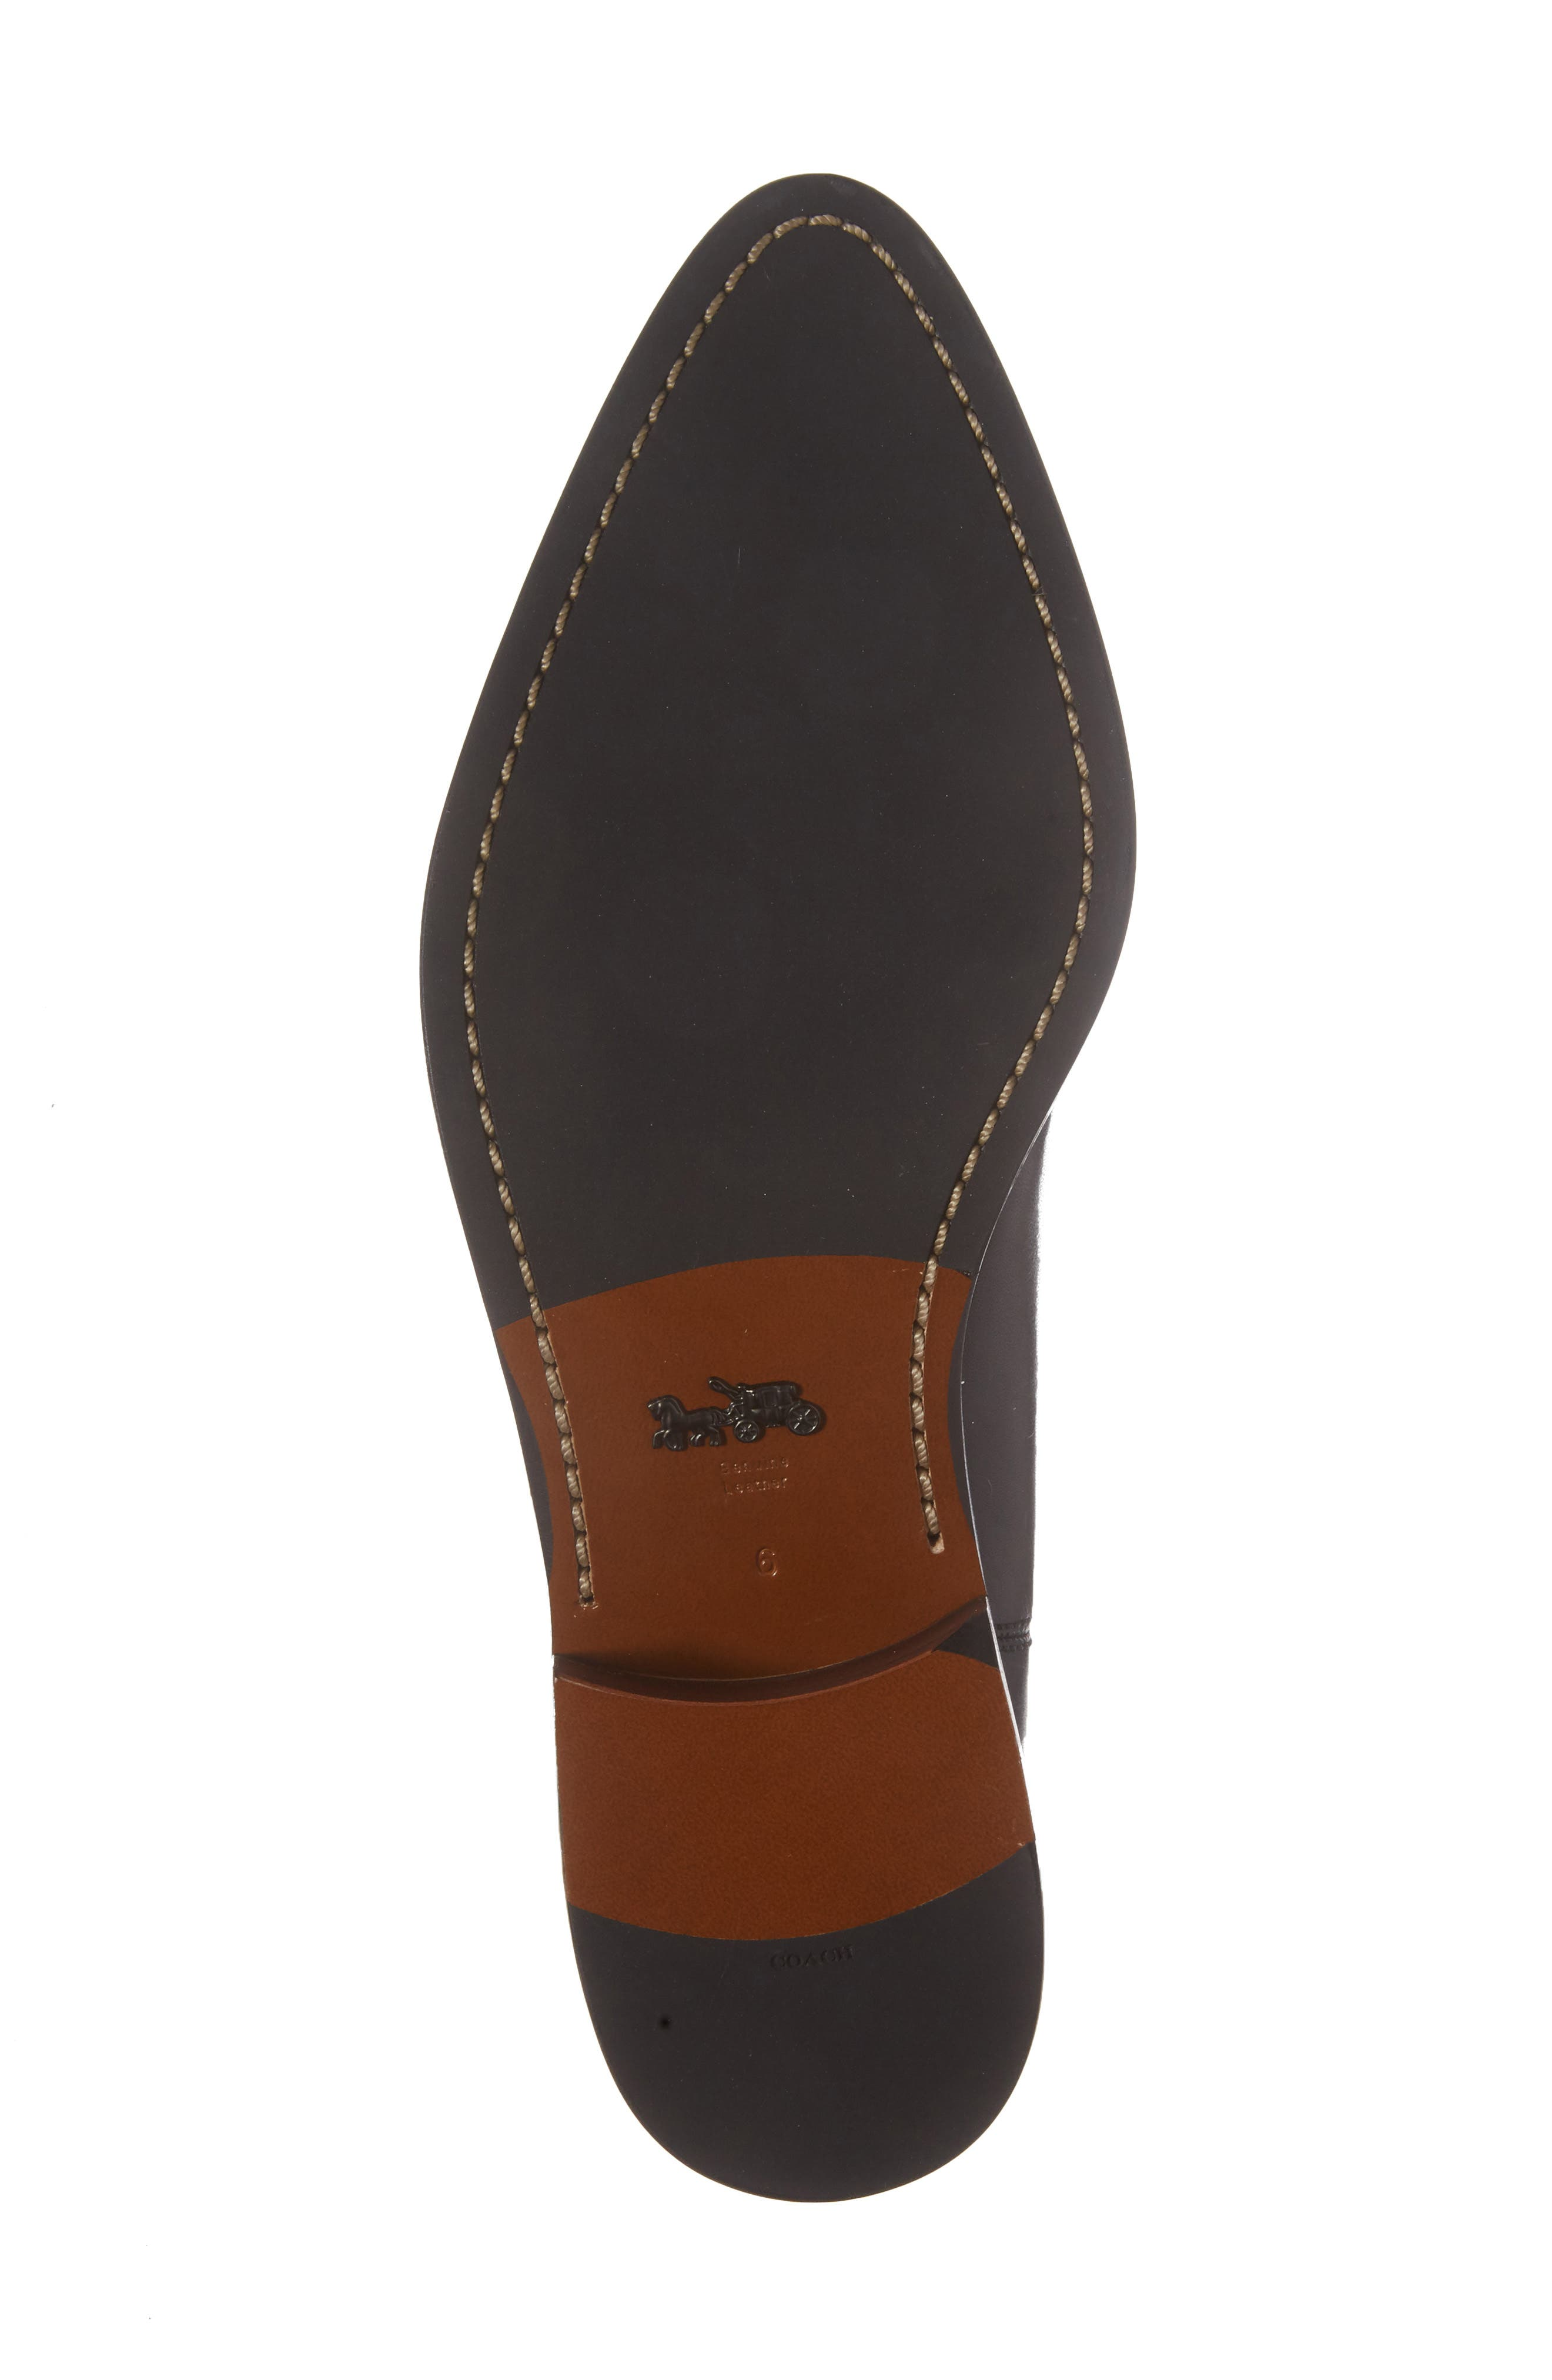 Bowery Embroidered Chelsea Bootie,                             Alternate thumbnail 6, color,                             Black Leather